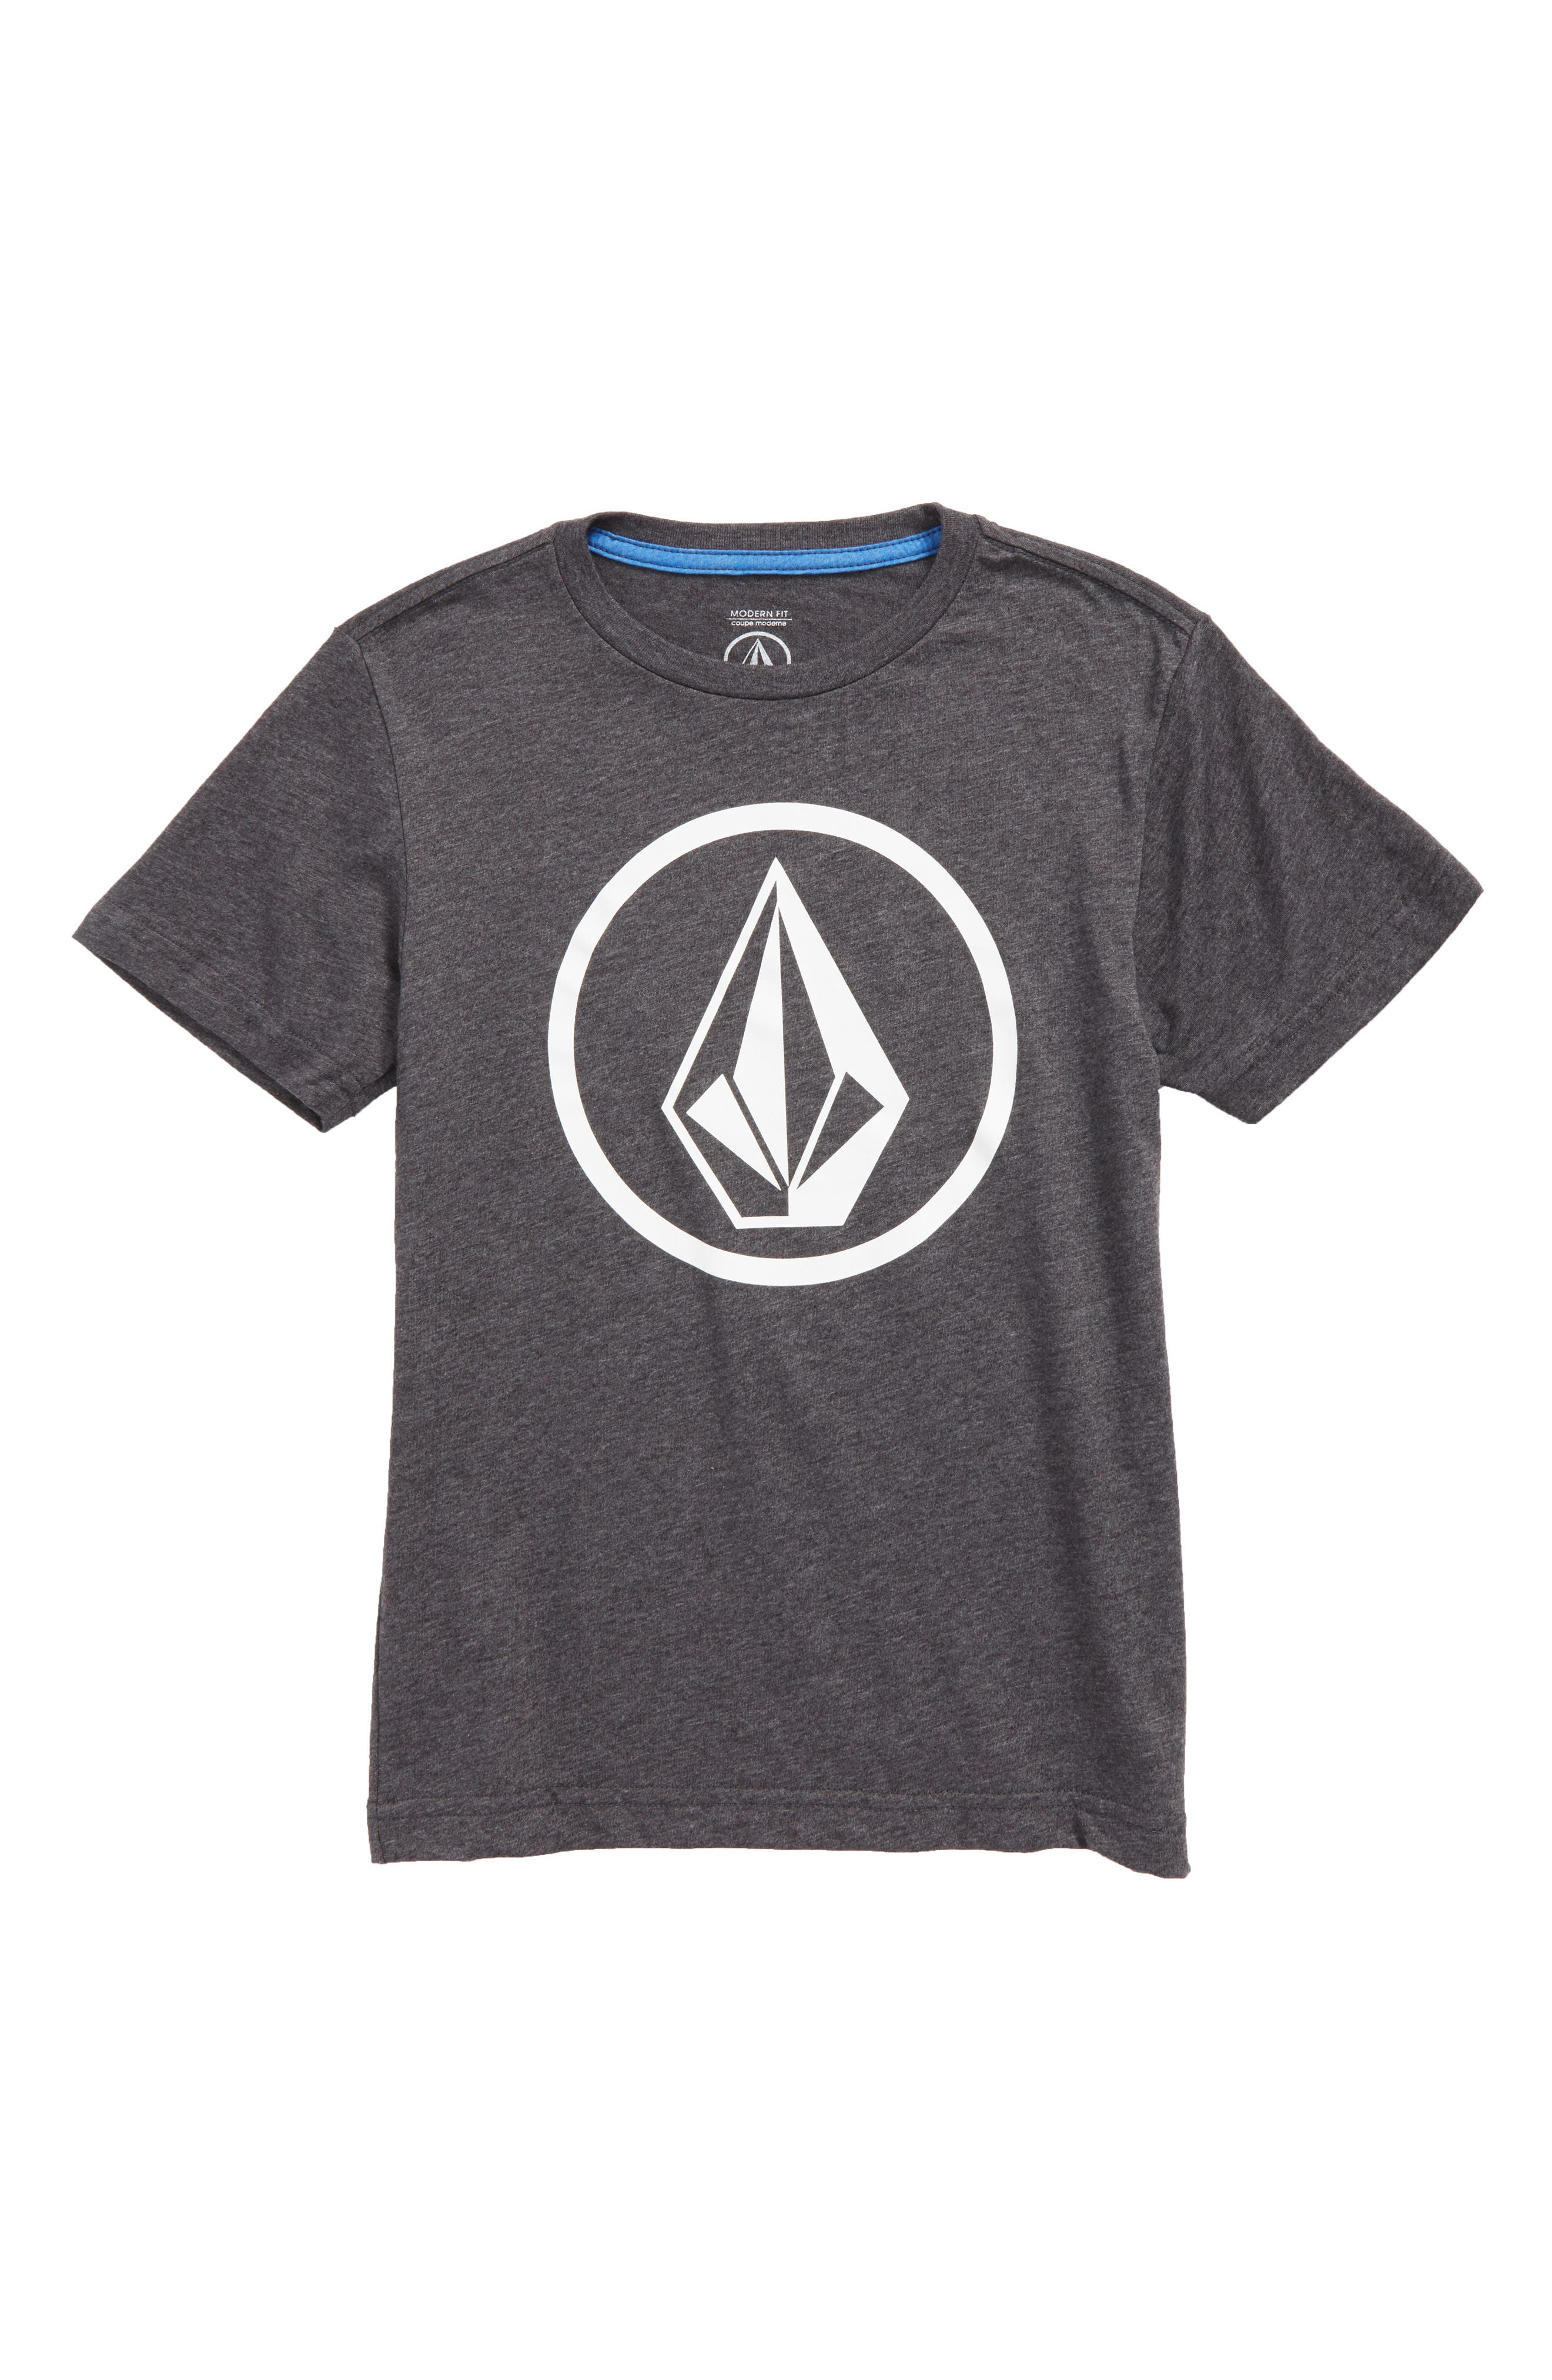 Alternate Image 1 Selected - Volcom Circle Stone Graphic T-Shirt (Big Boys)